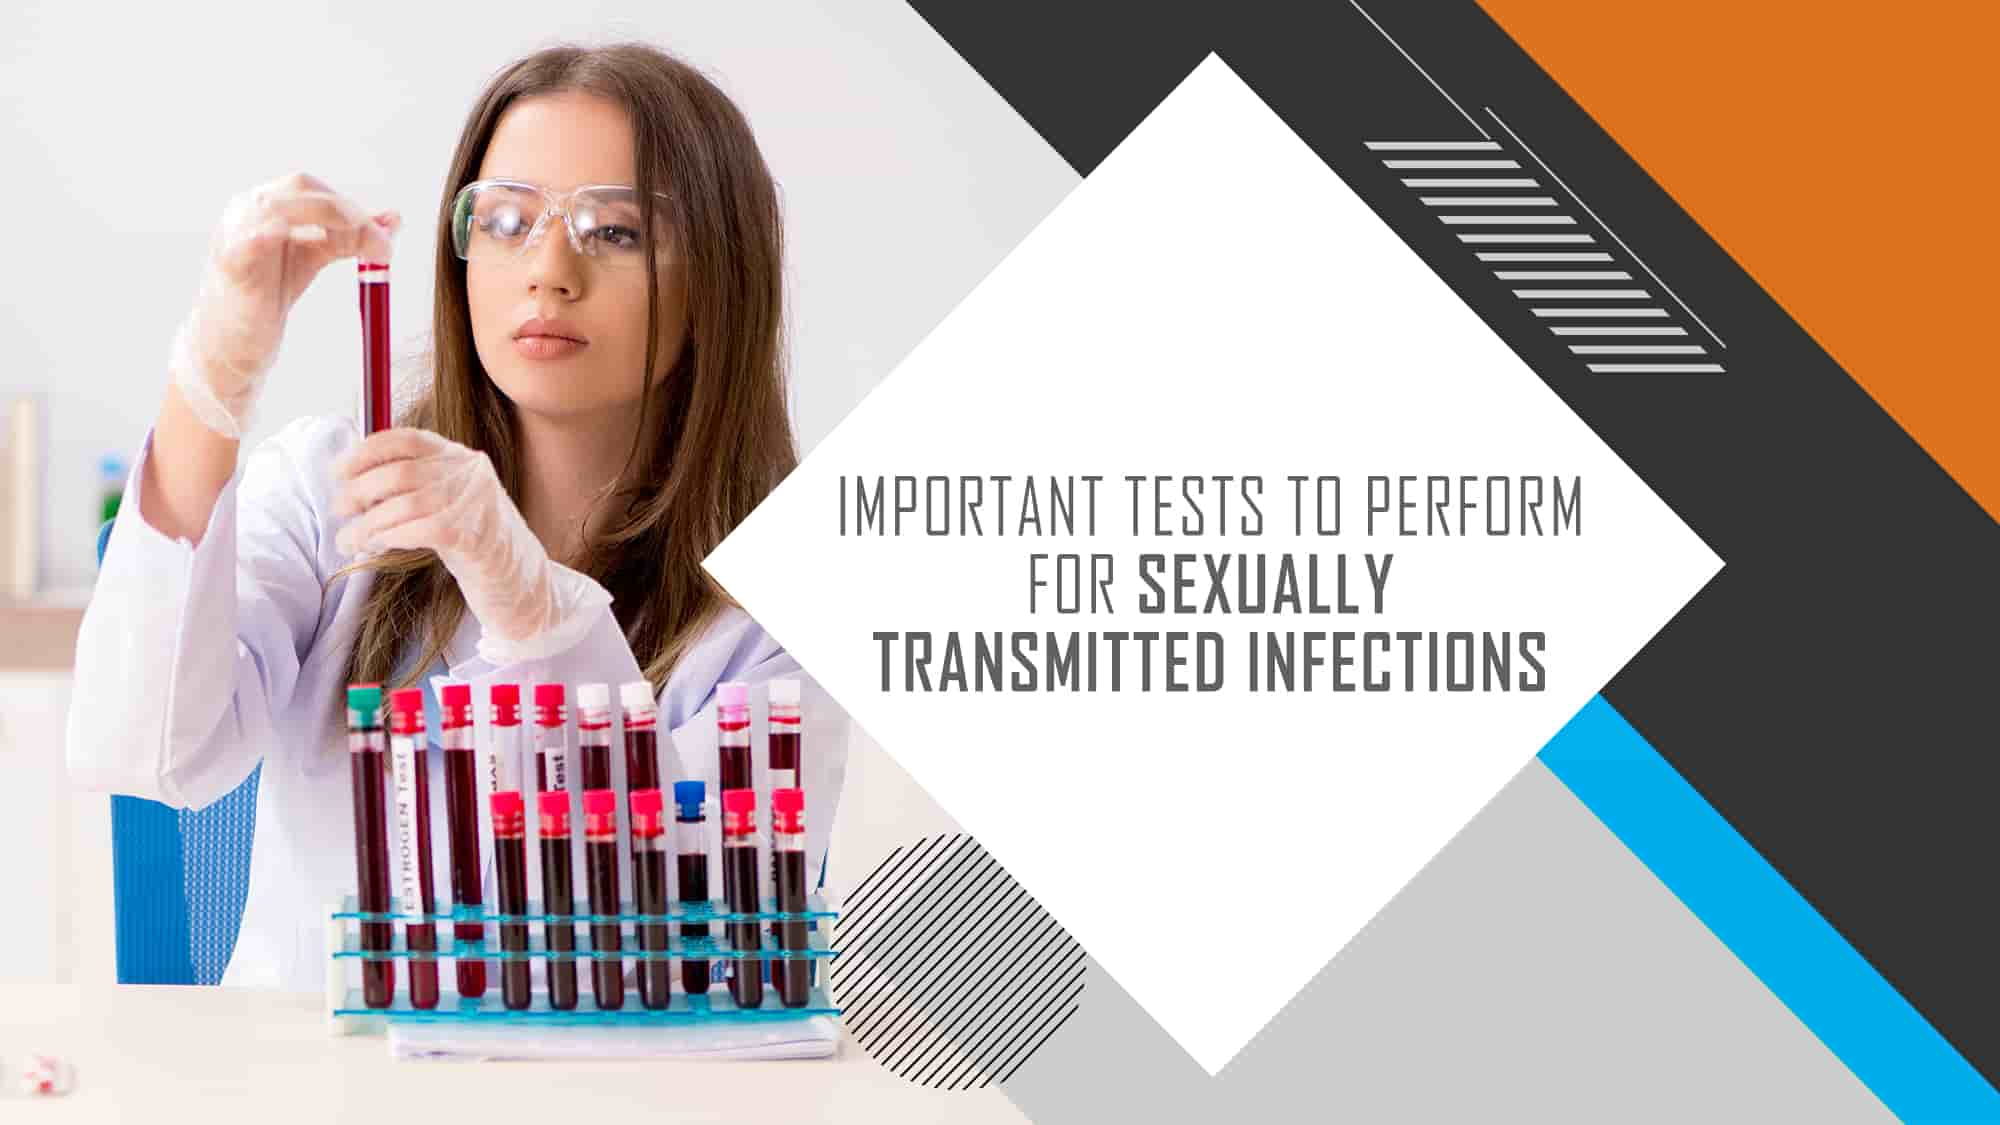 Important Tests to Perform for Sexually Transmitted Infections